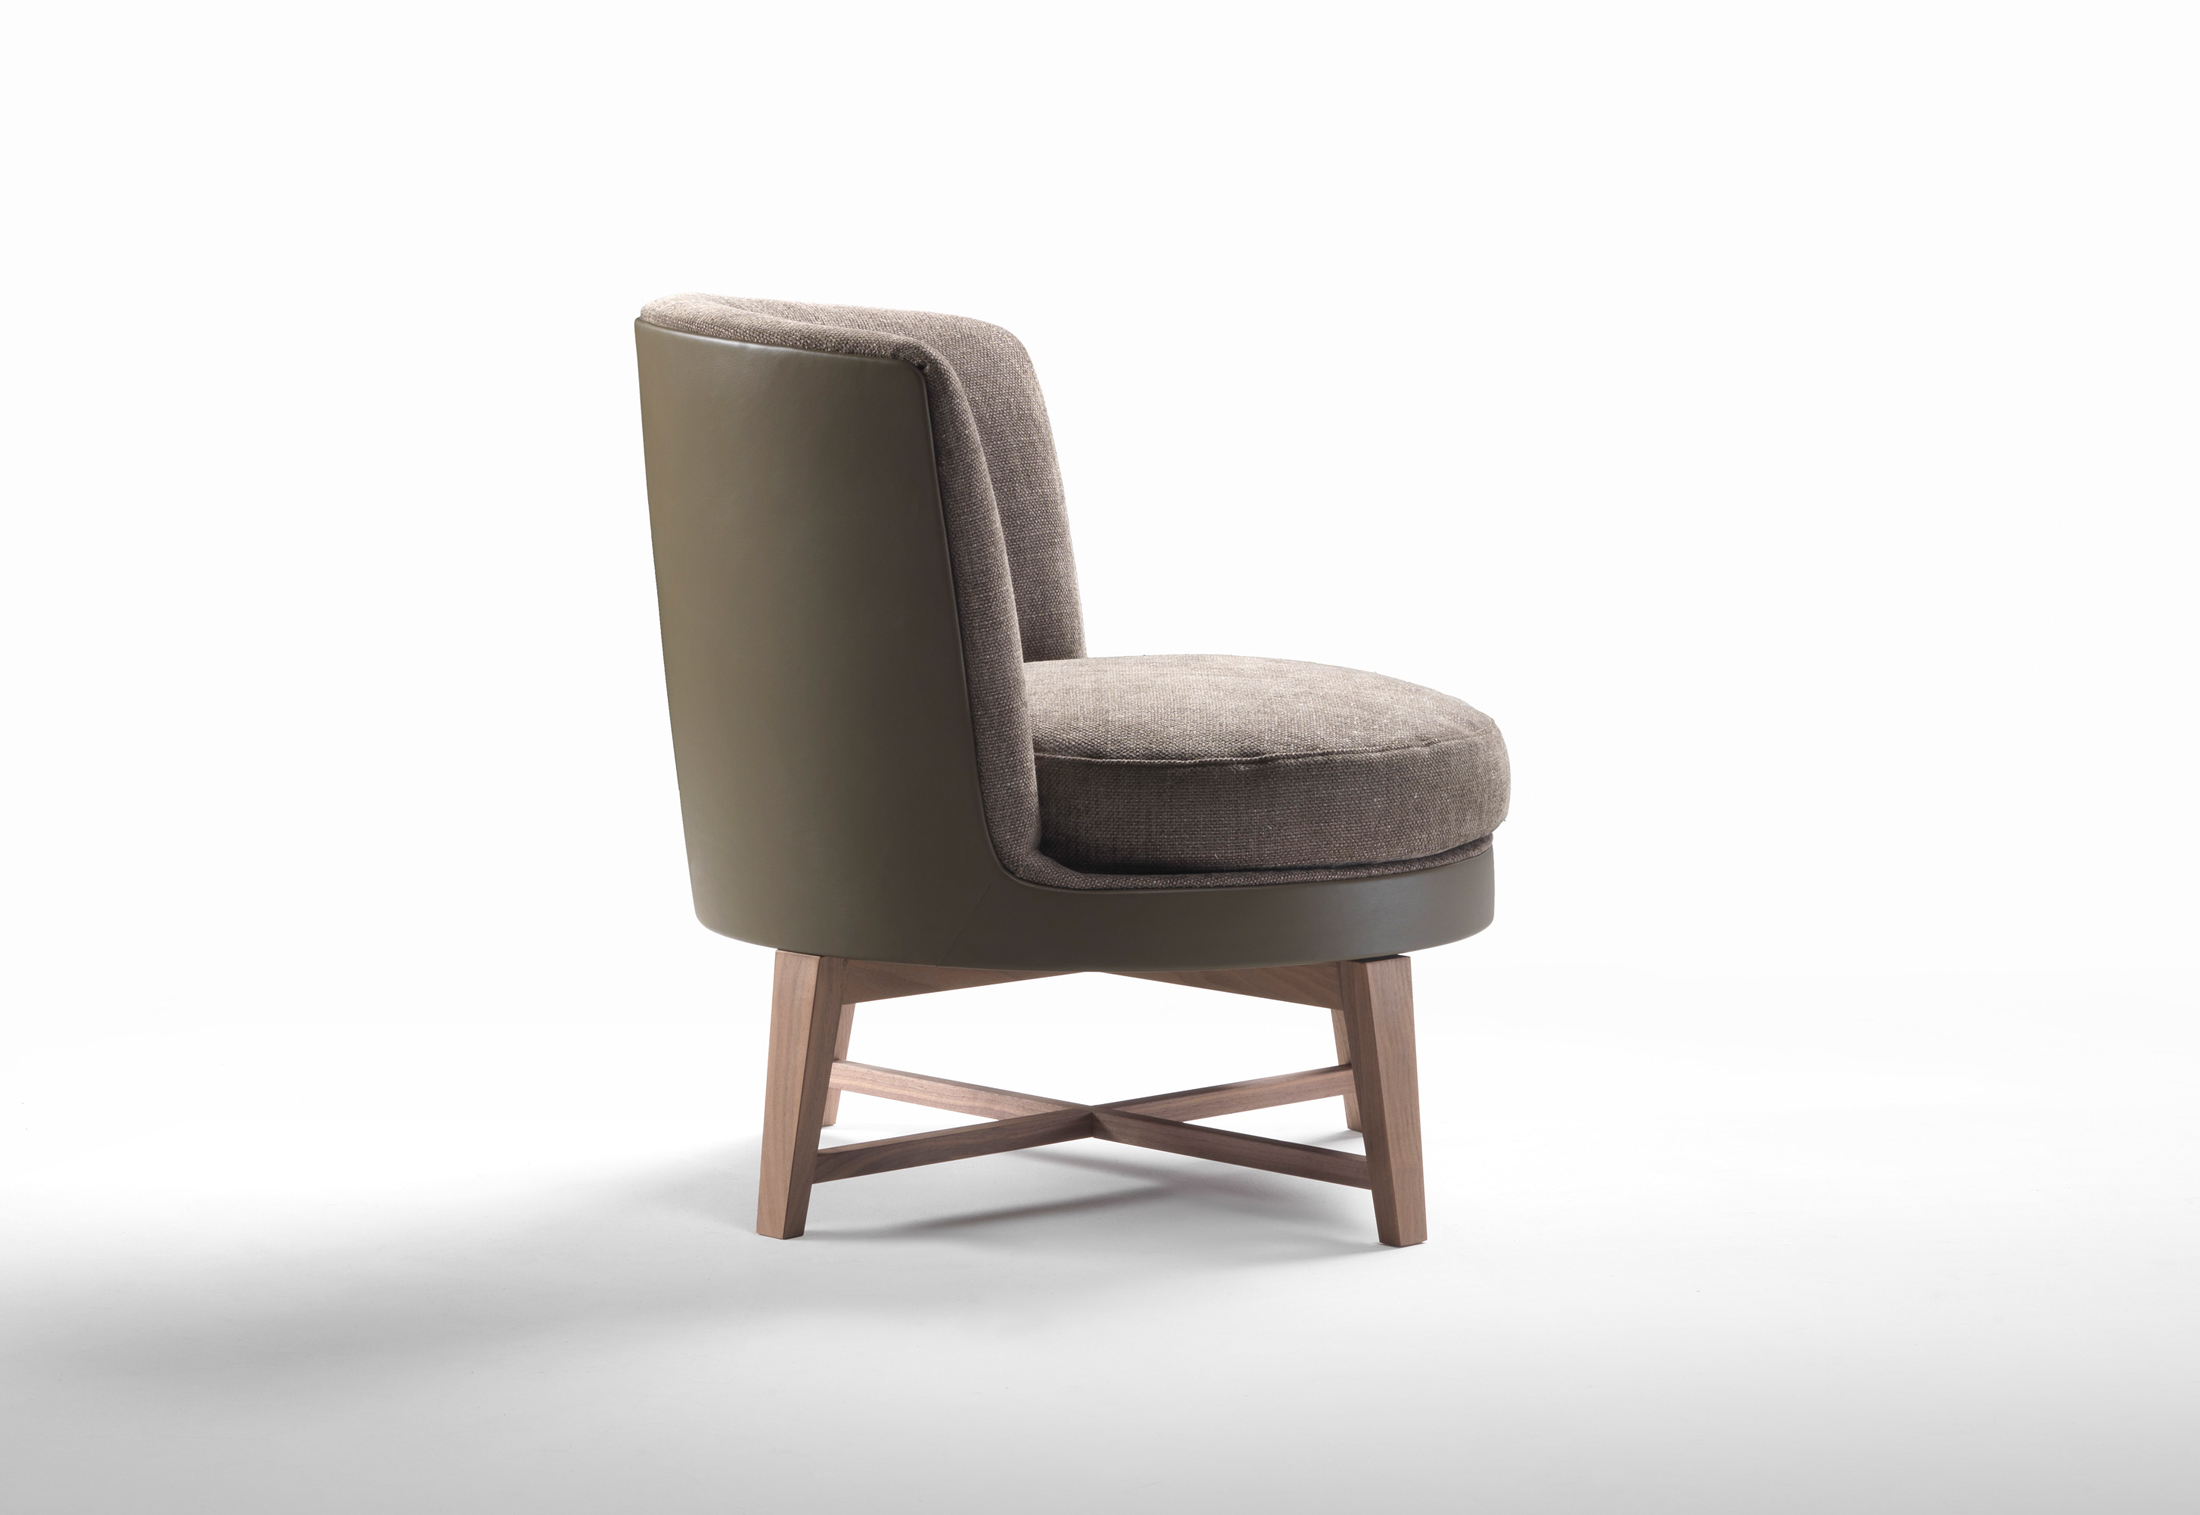 Feel Good Sessel Holzgestell Von Flexform Stylepark